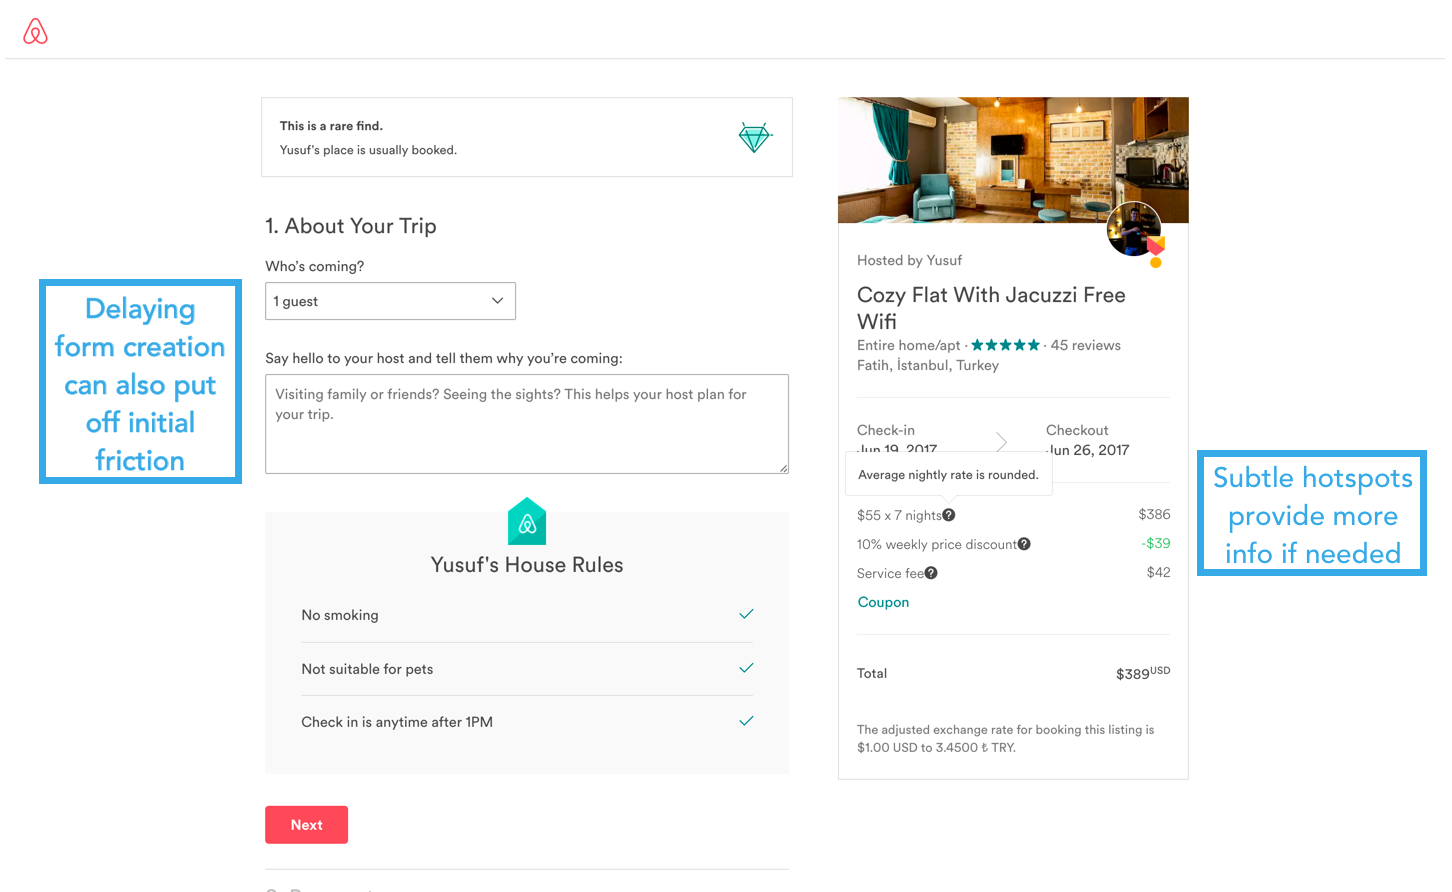 airbnb purchase details